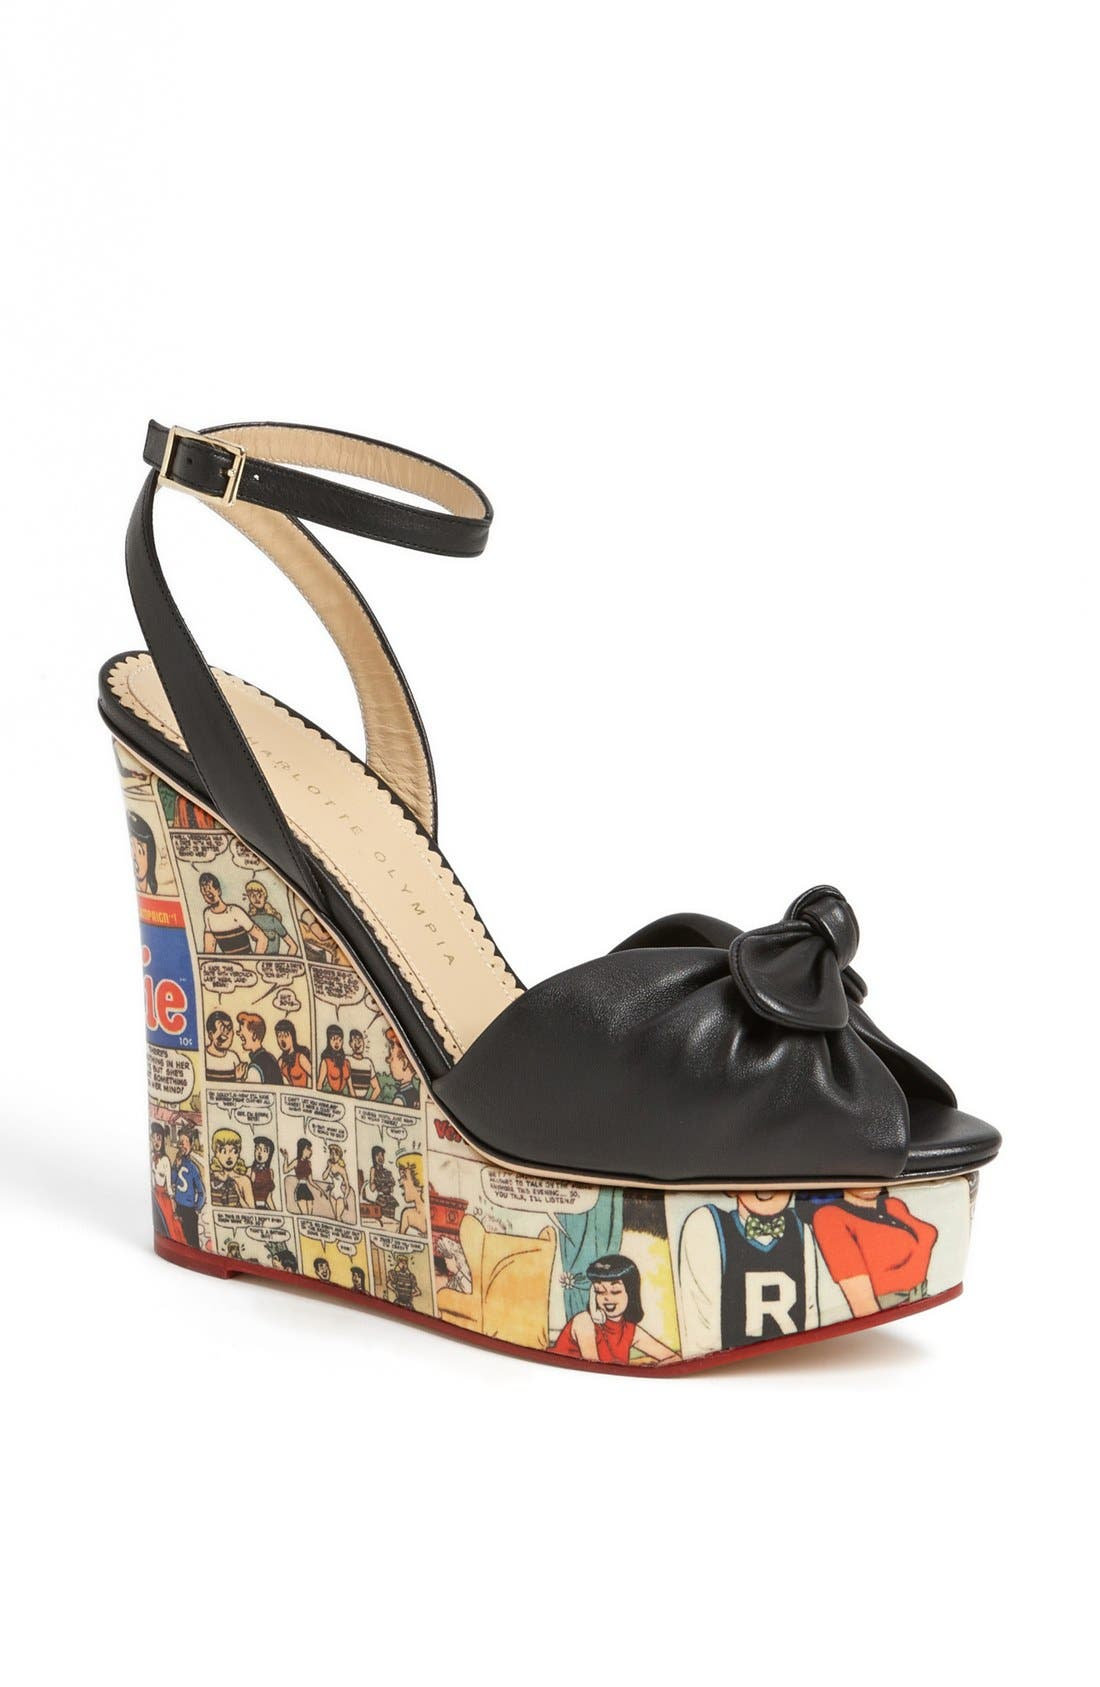 Main Image - Charlotte Olympia 'Archie' Wedge Sandal (Nordstrom Exclusive)